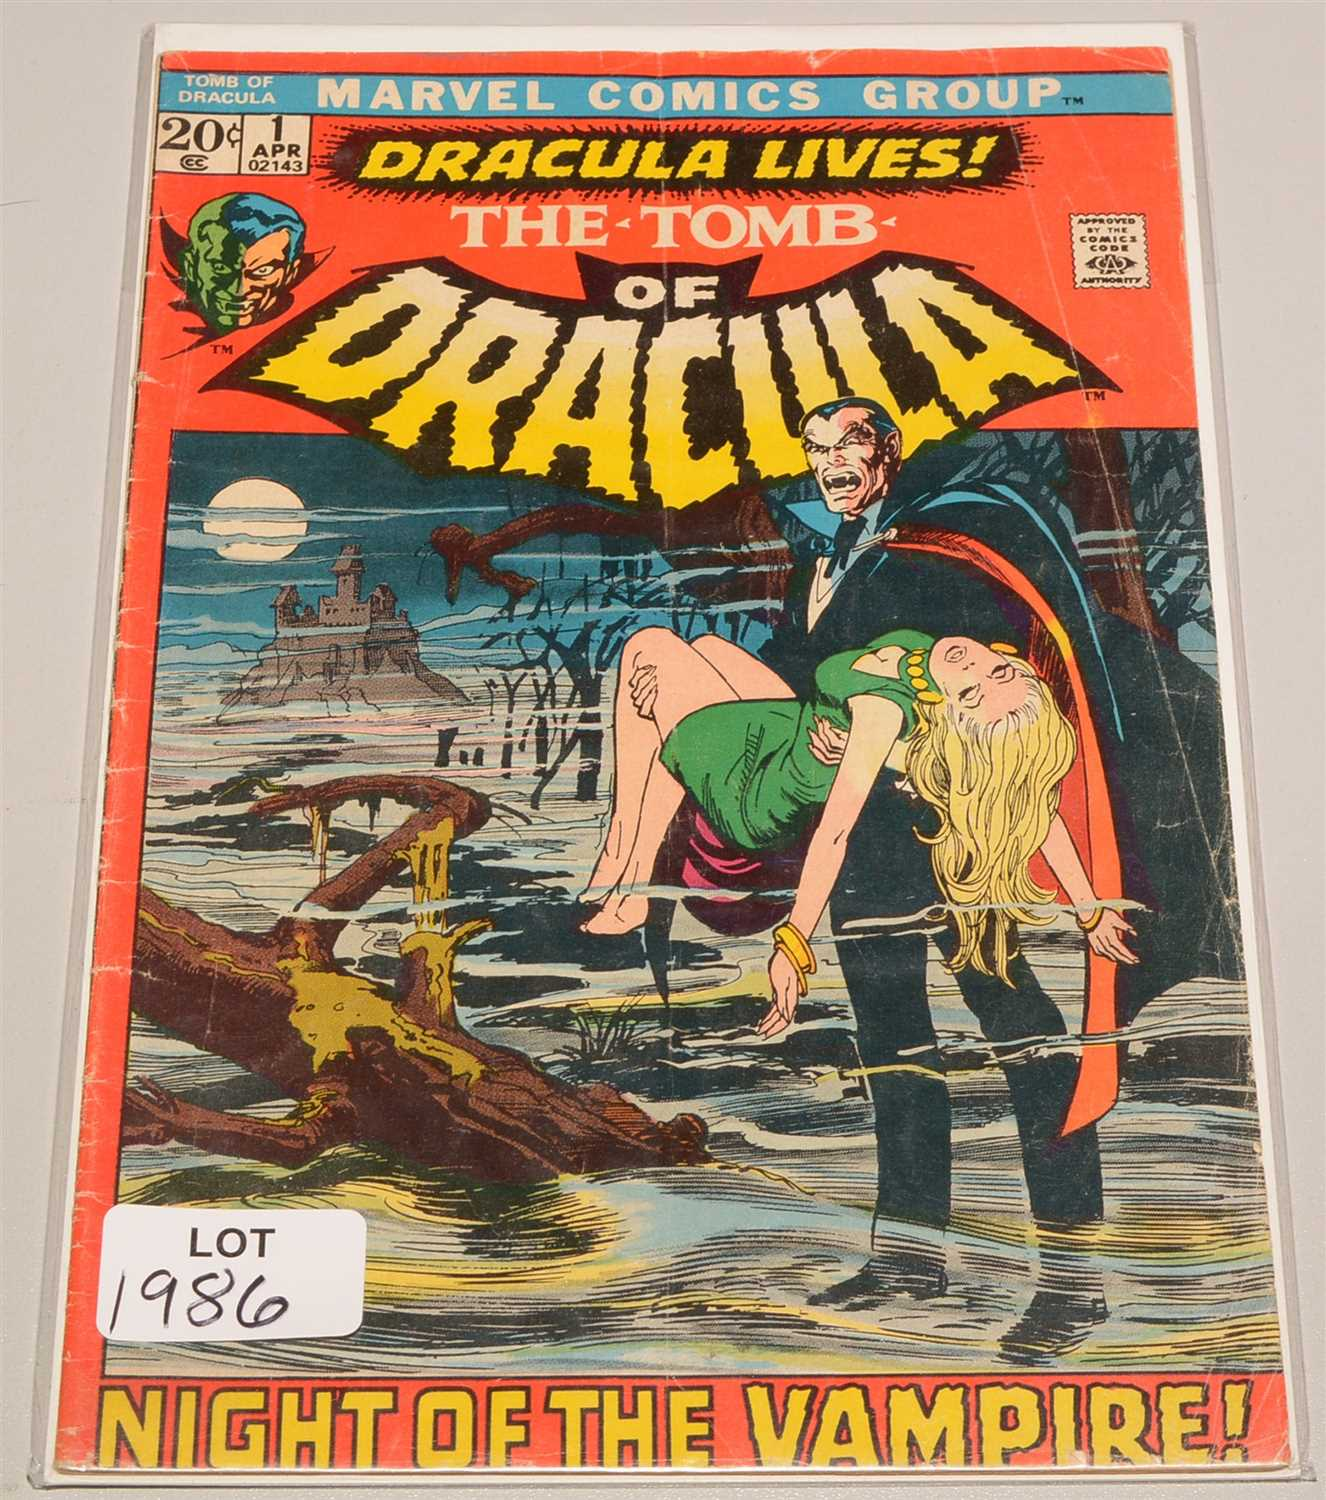 Lot 1986-The Tomb of Dracula No. 1